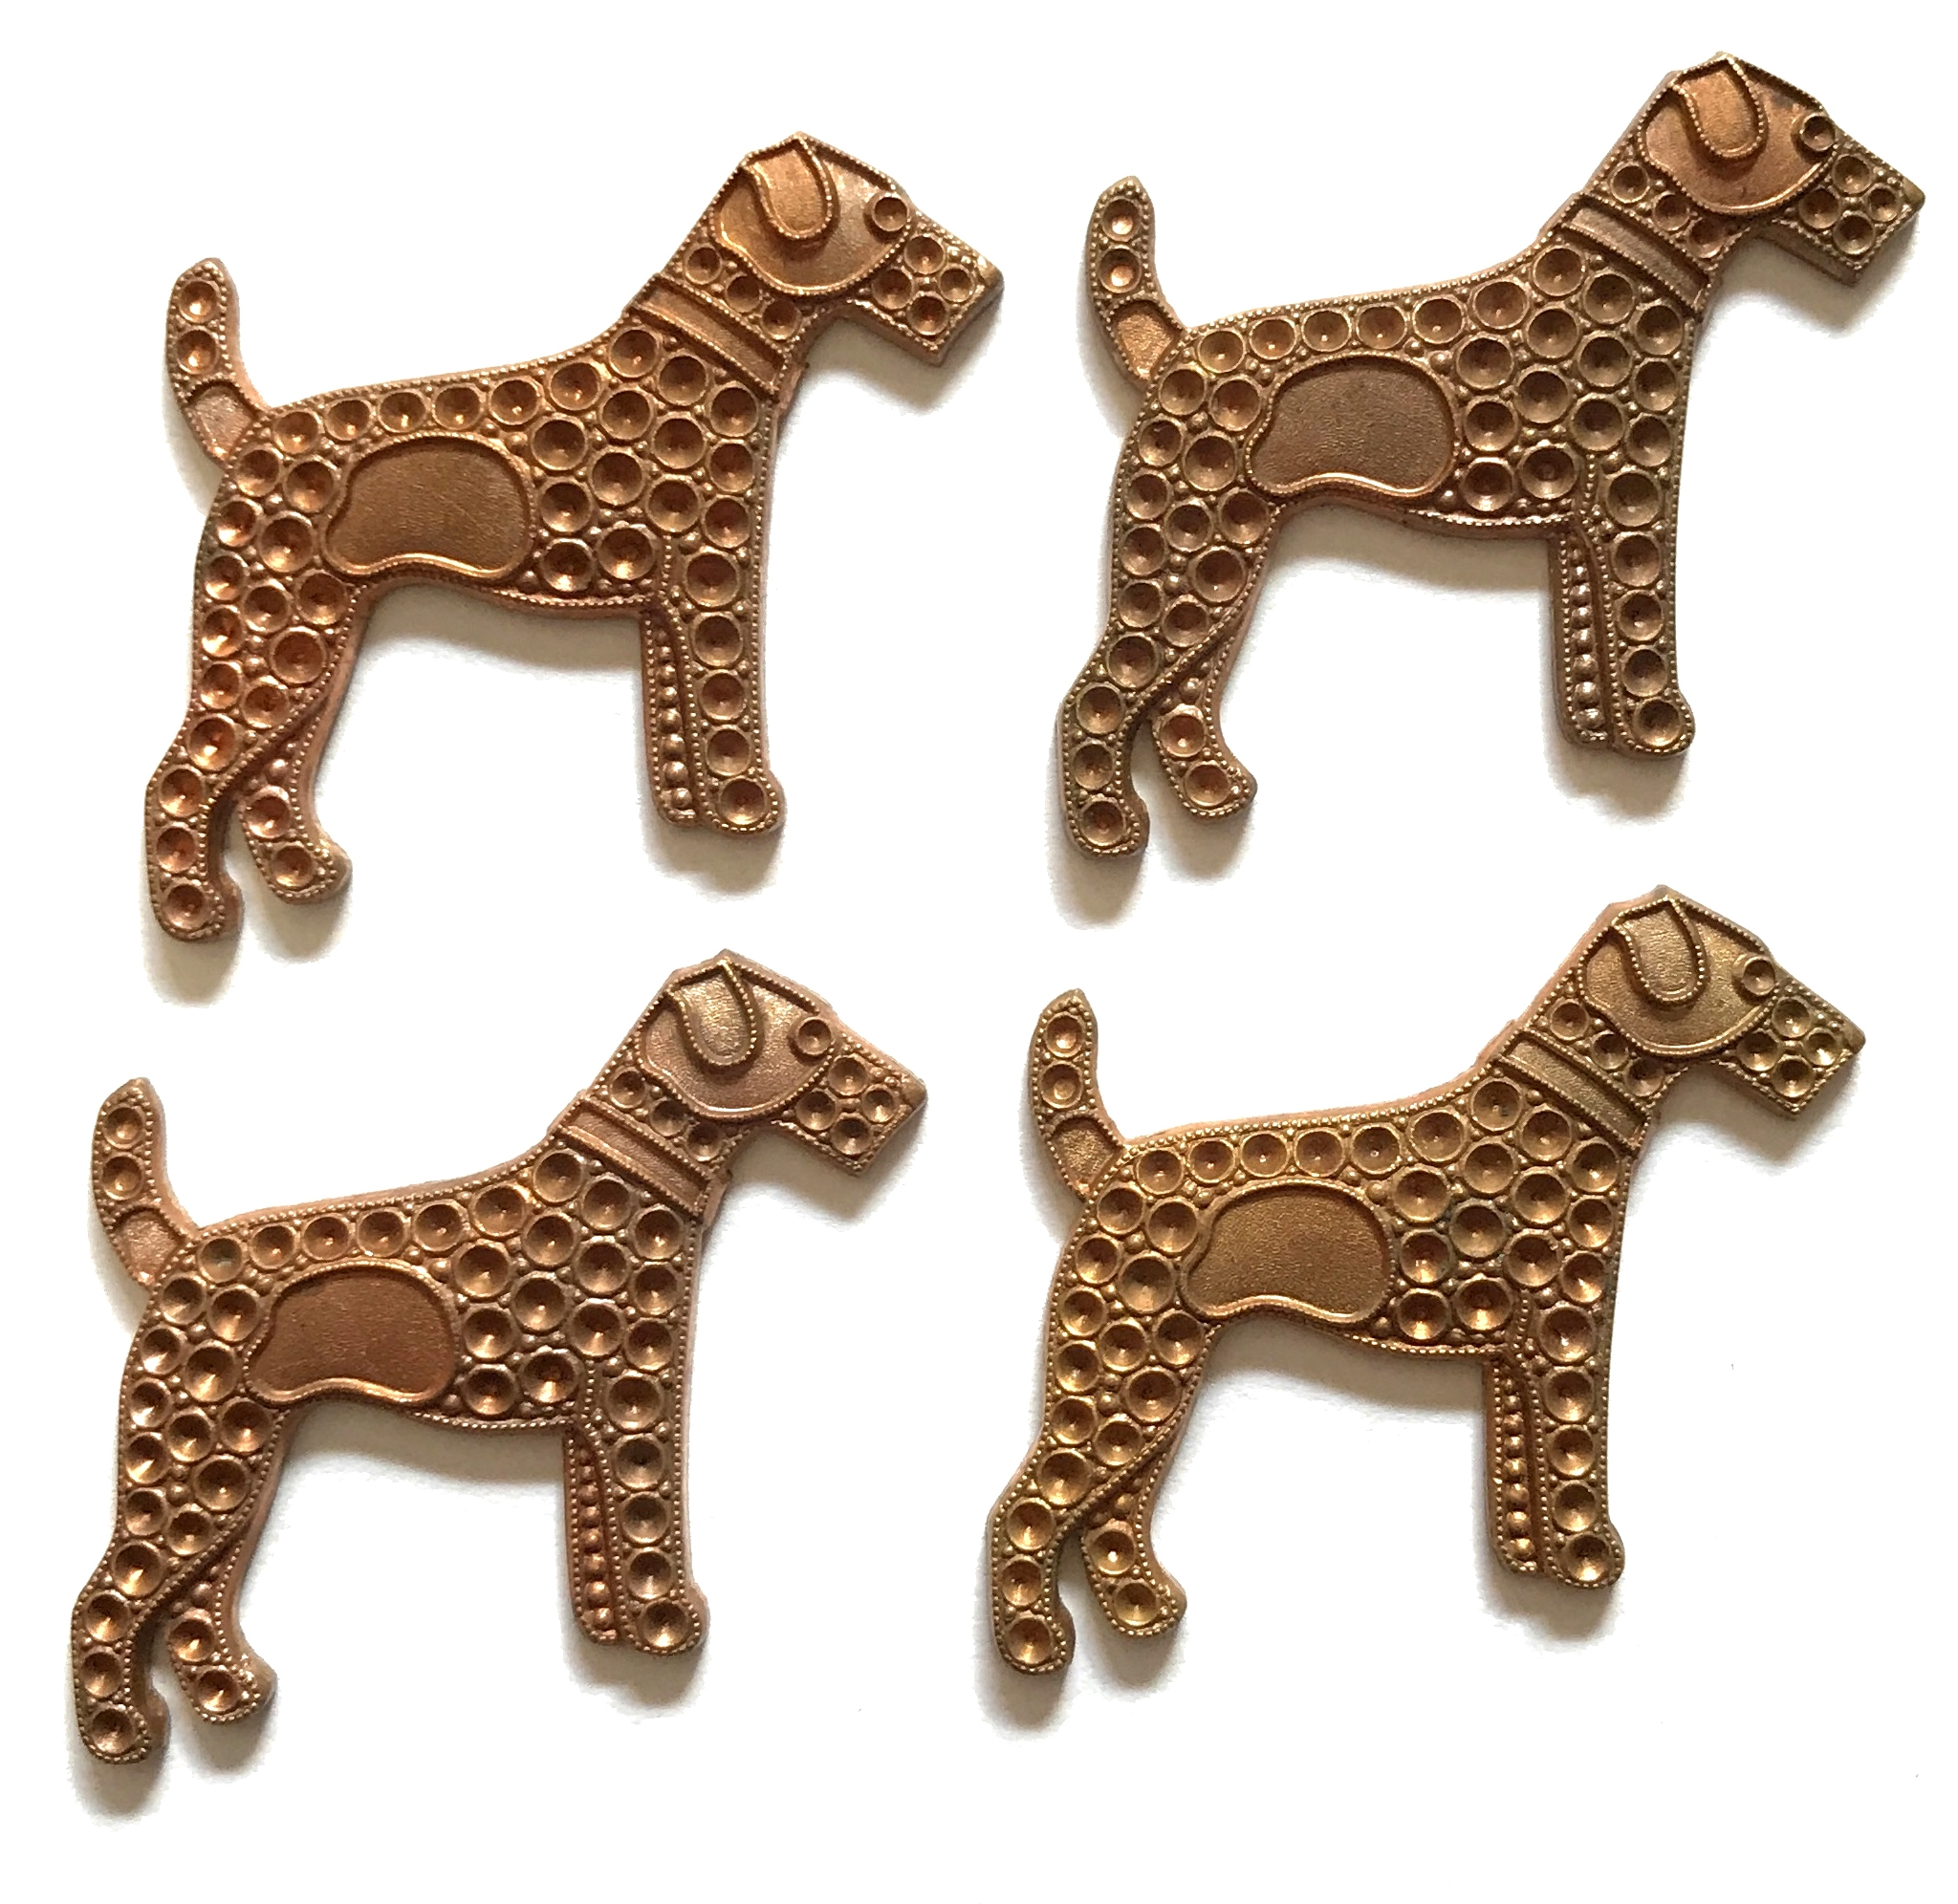 Vintage French Stampings, 4 Piece, Airedale Dog with Stone Set Design, Dog Jewelry, Vintage Supplies, Gingerbread Patina, 30 x 39mm, B'sue